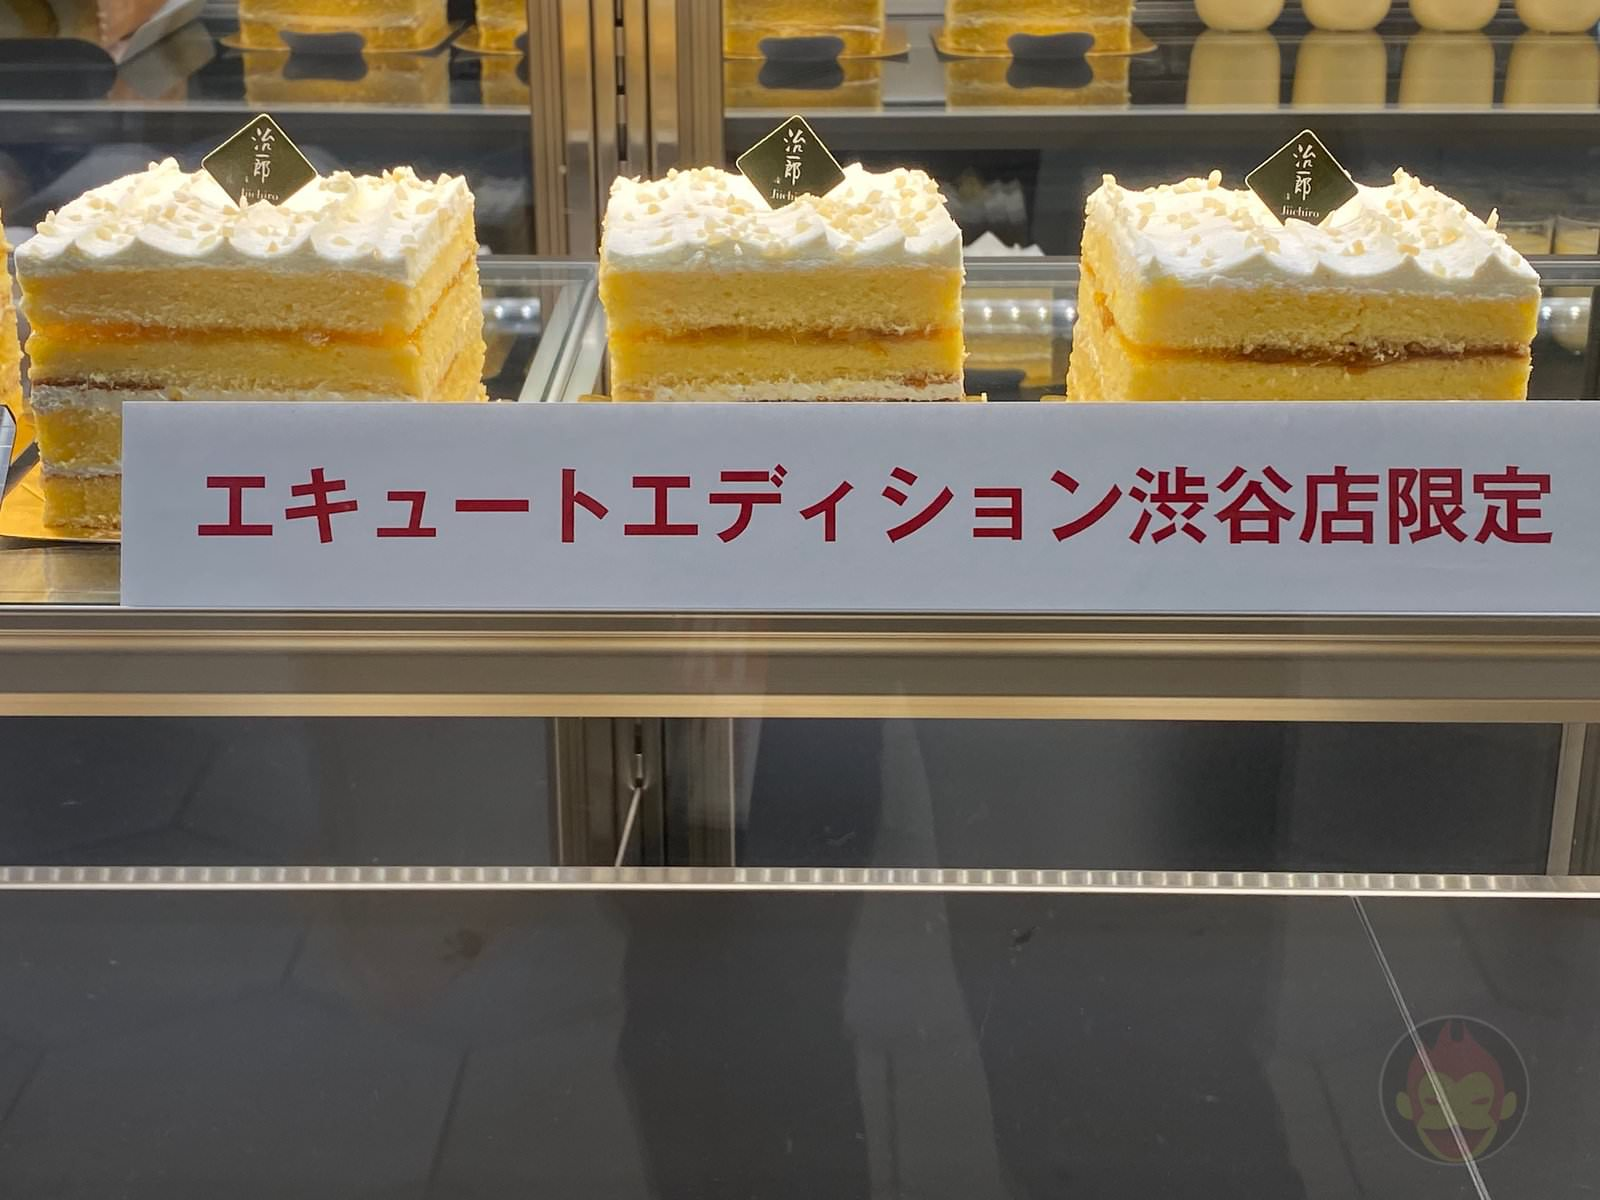 Shibuya-Scramble-Square-Food-I-Ate-26.jpeg